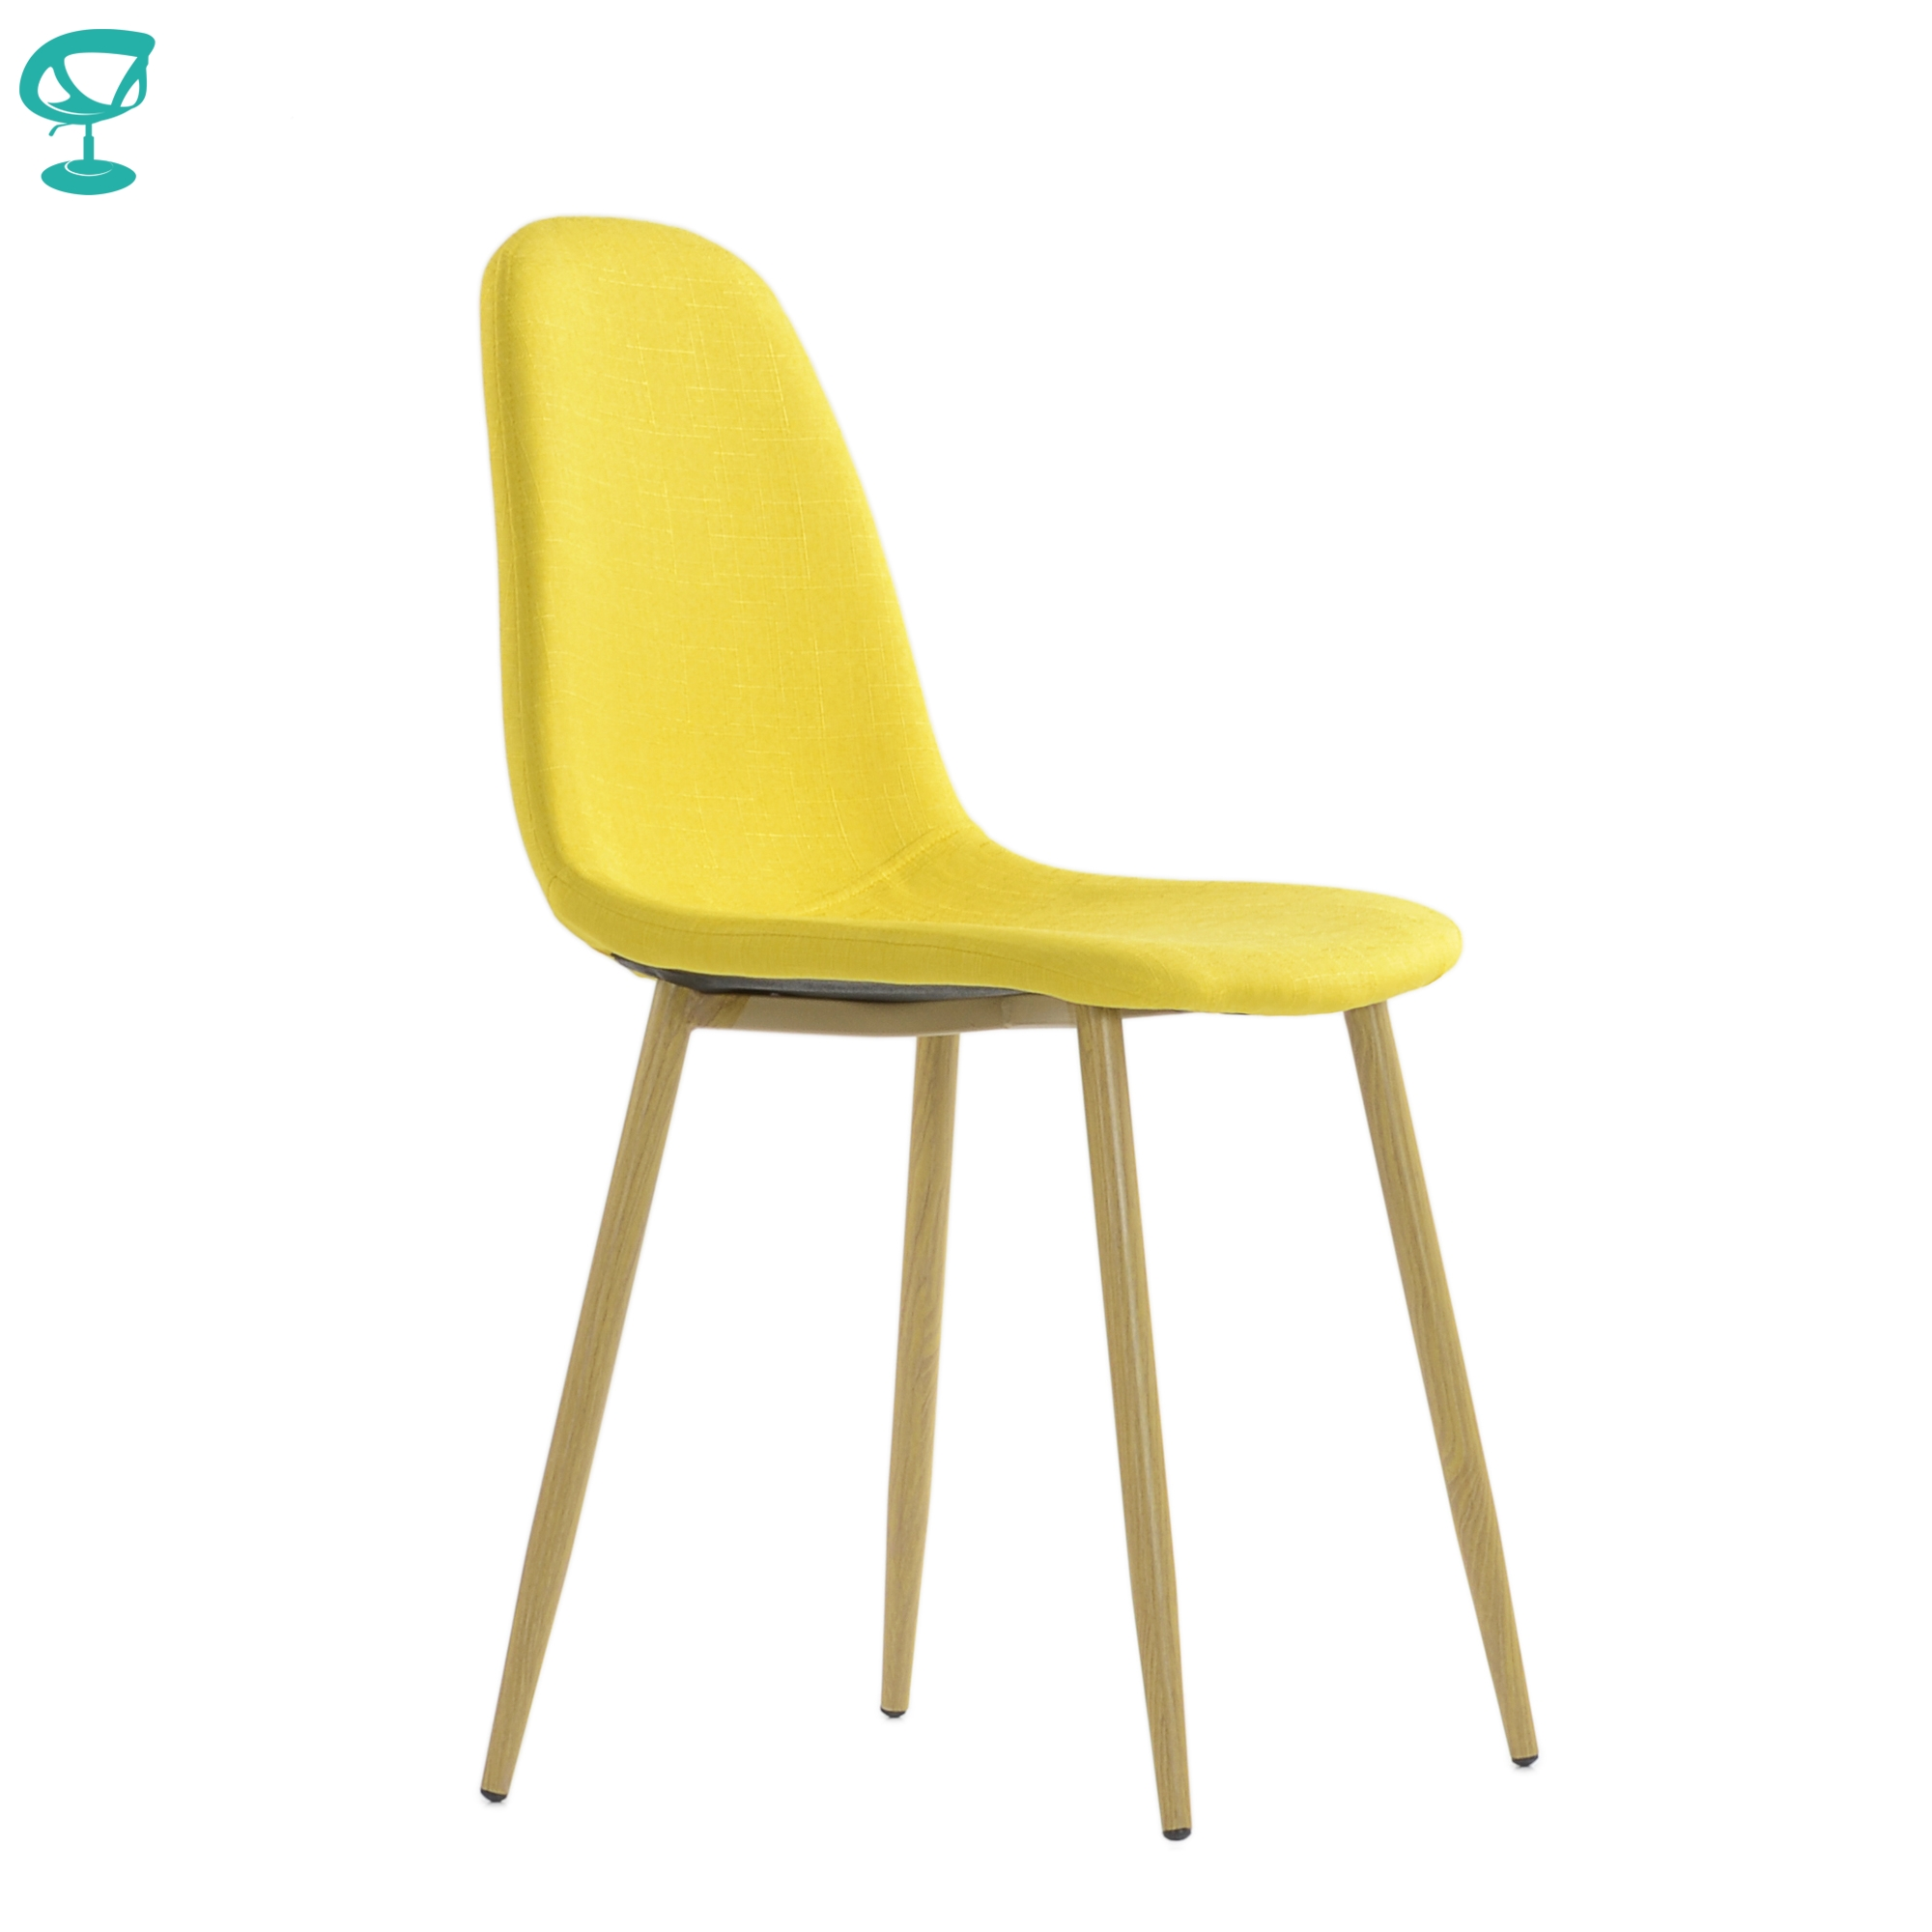 95747 Barneo S-15 Kitchen Chair Legs Metal Seat Fabric Chair For Living Room Chair Dining Chair Table Chair Furniture For Kitchen